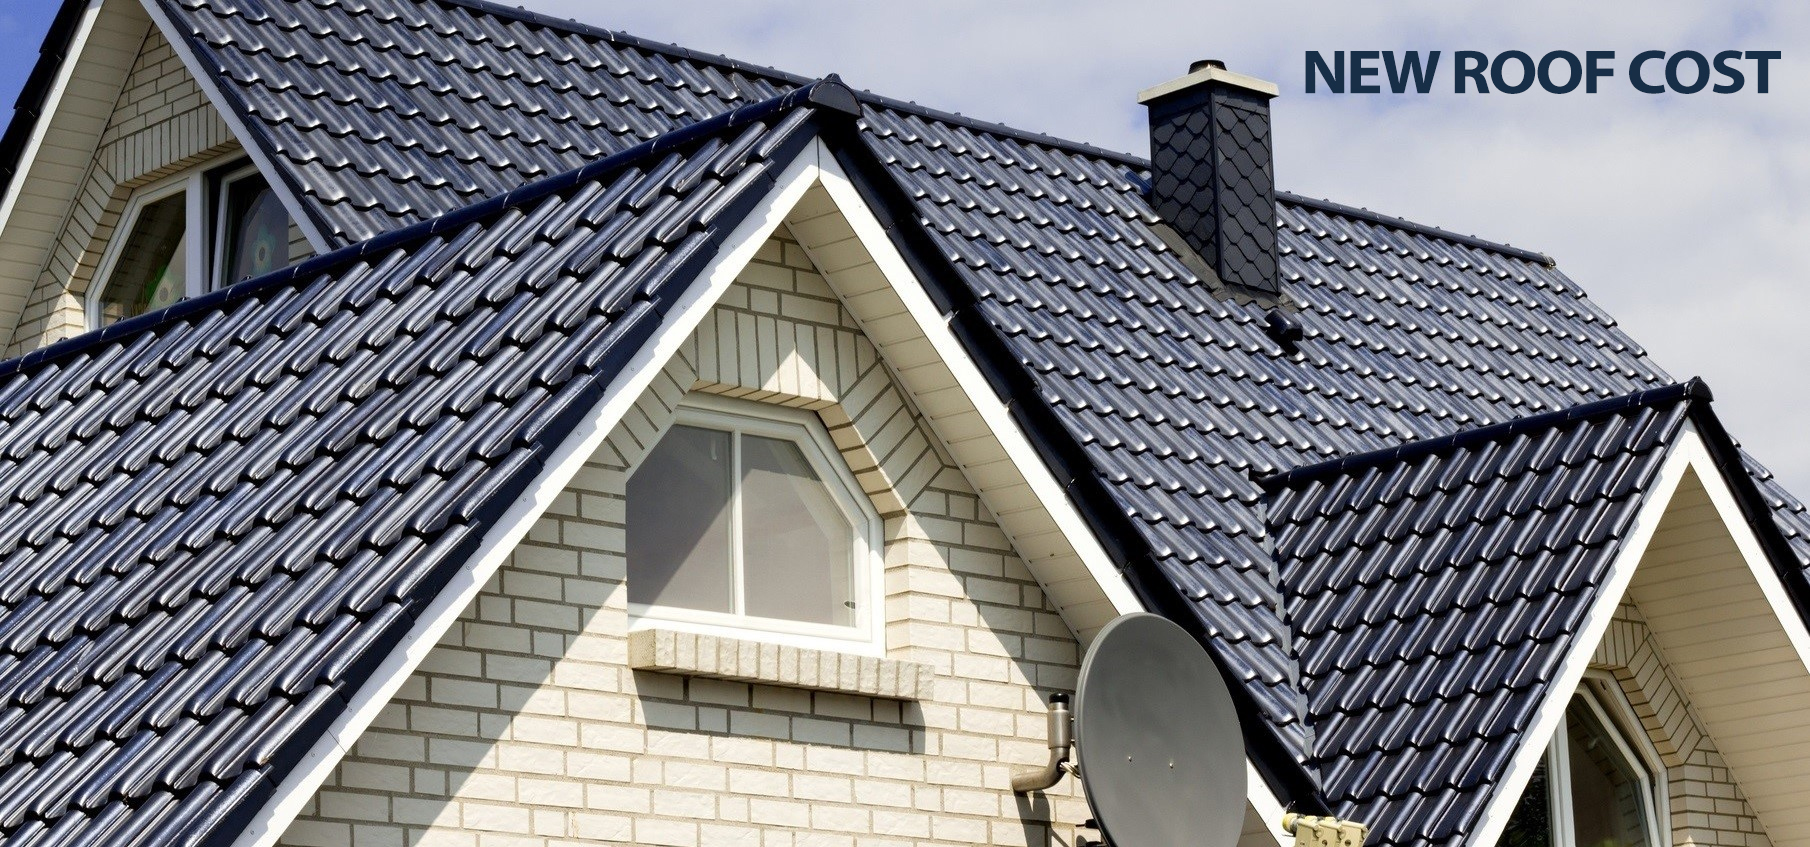 HOW MUCH WILL A NEW ROOF COST?